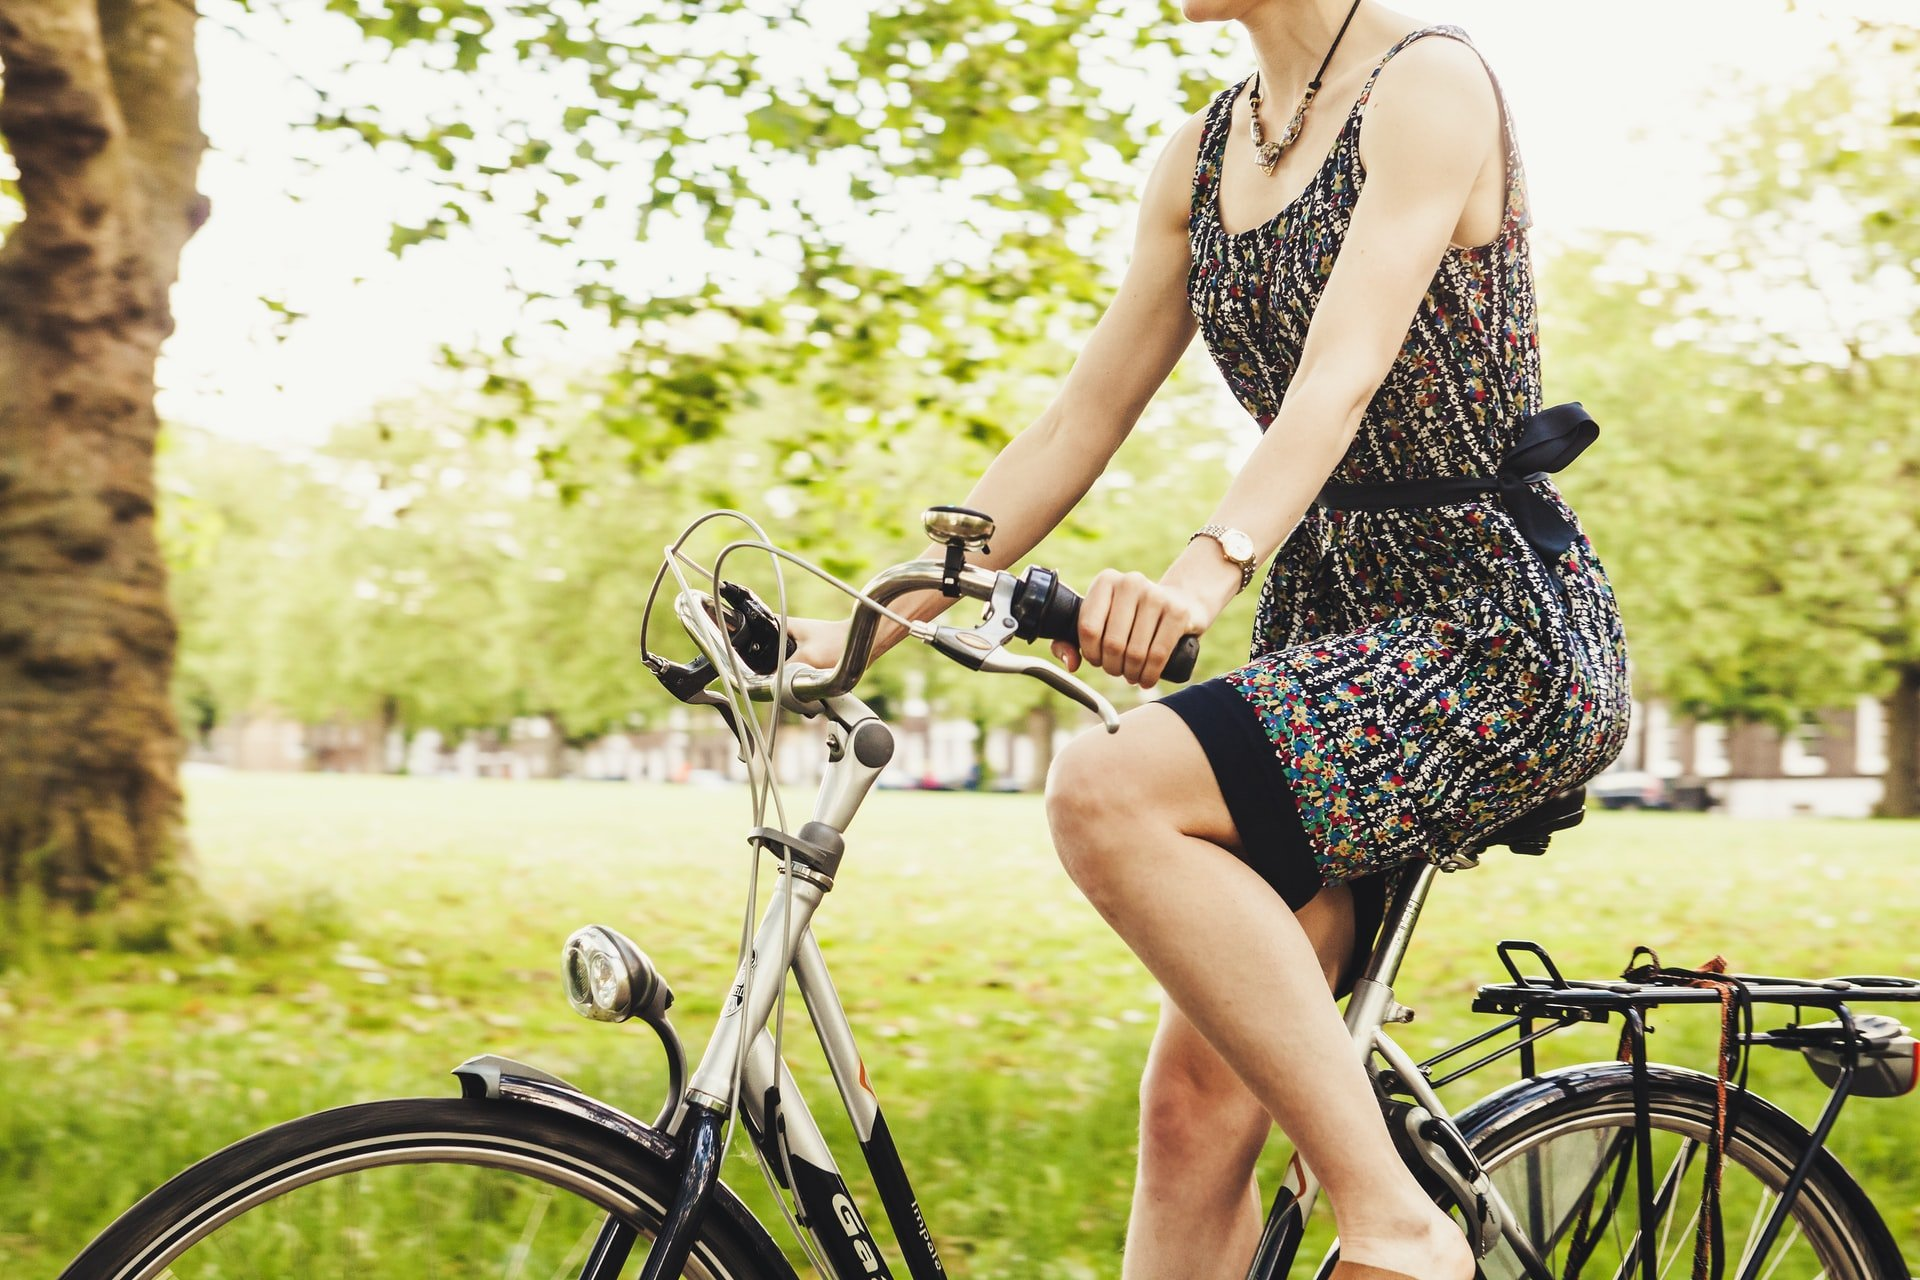 Holistic Health and Wellness Tips for Healthy Aging